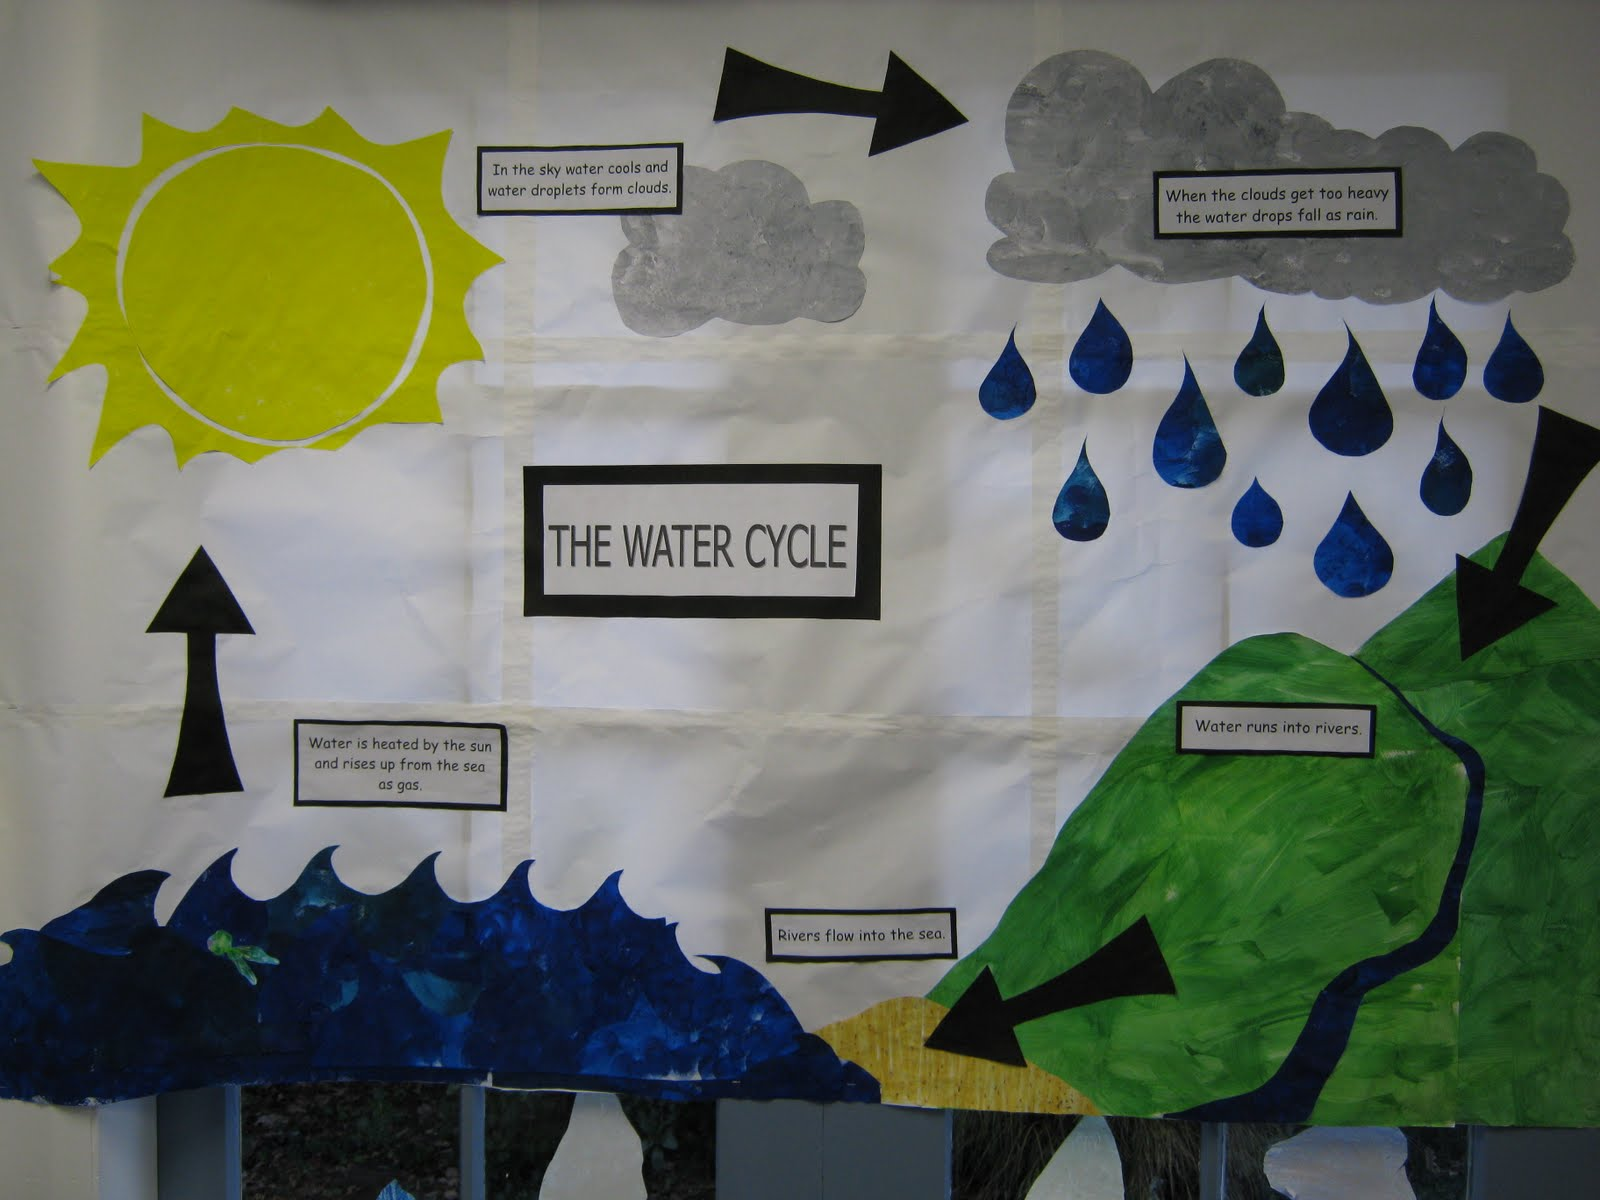 water cycle poster project The water cycle participants observe how water is continuously cycled their terrariums and to assemble a water cycle poster or photo journal of their project • make a water cycle poster with different fabrics representing each of the stages.